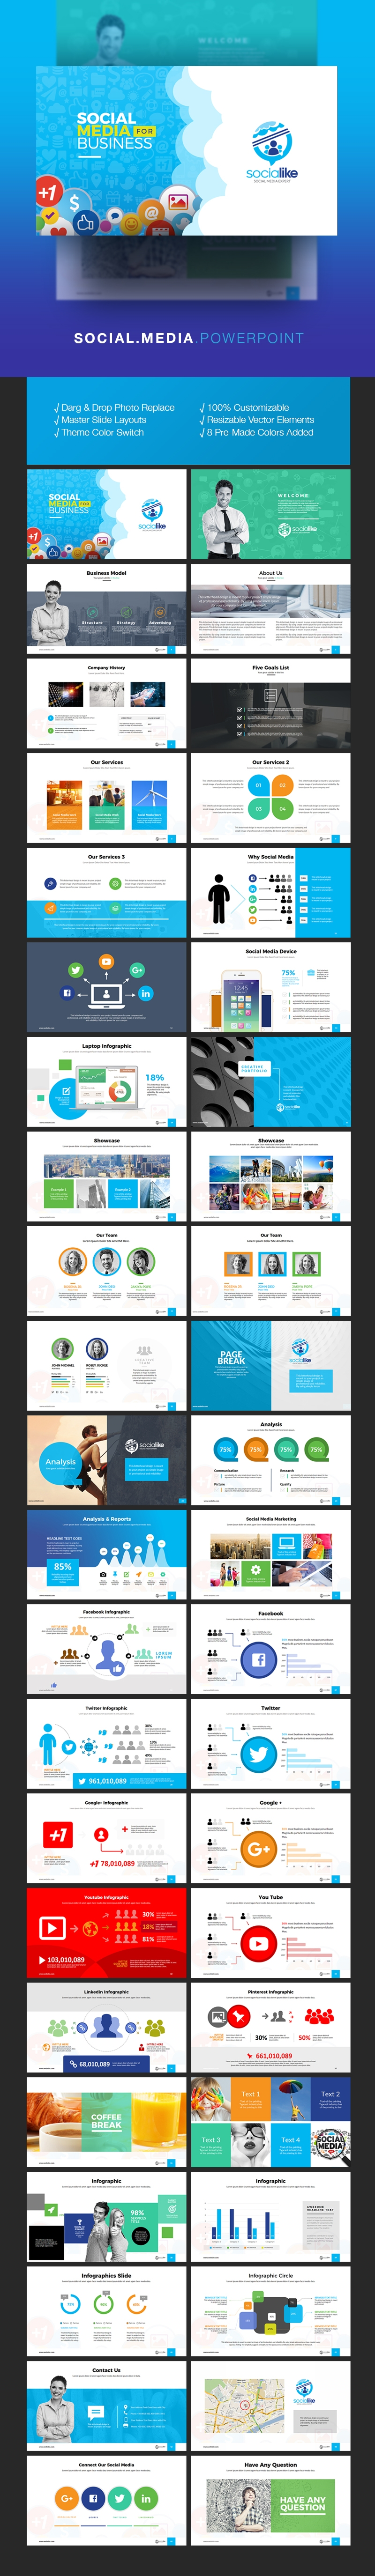 Social Media PowerPoint for Social Marketing & Promotion